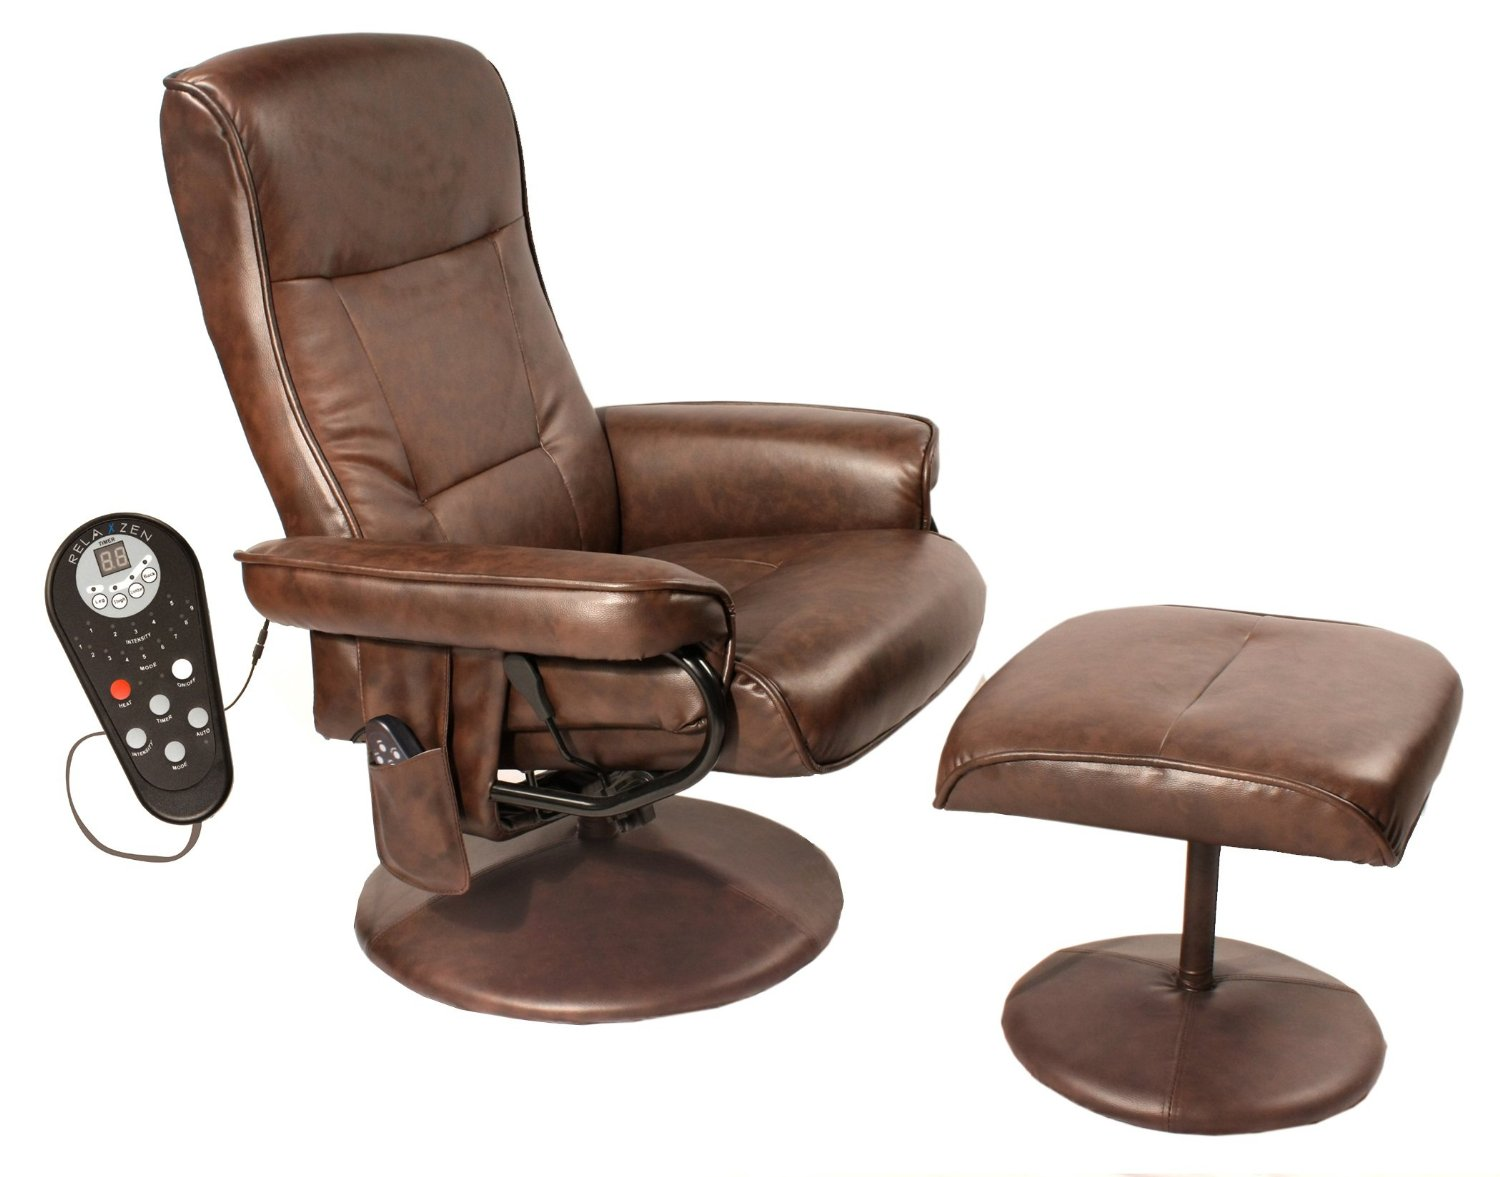 Message Chairs Relaxzen Lounge Chair 60 425111 Review Massage Chair Hq